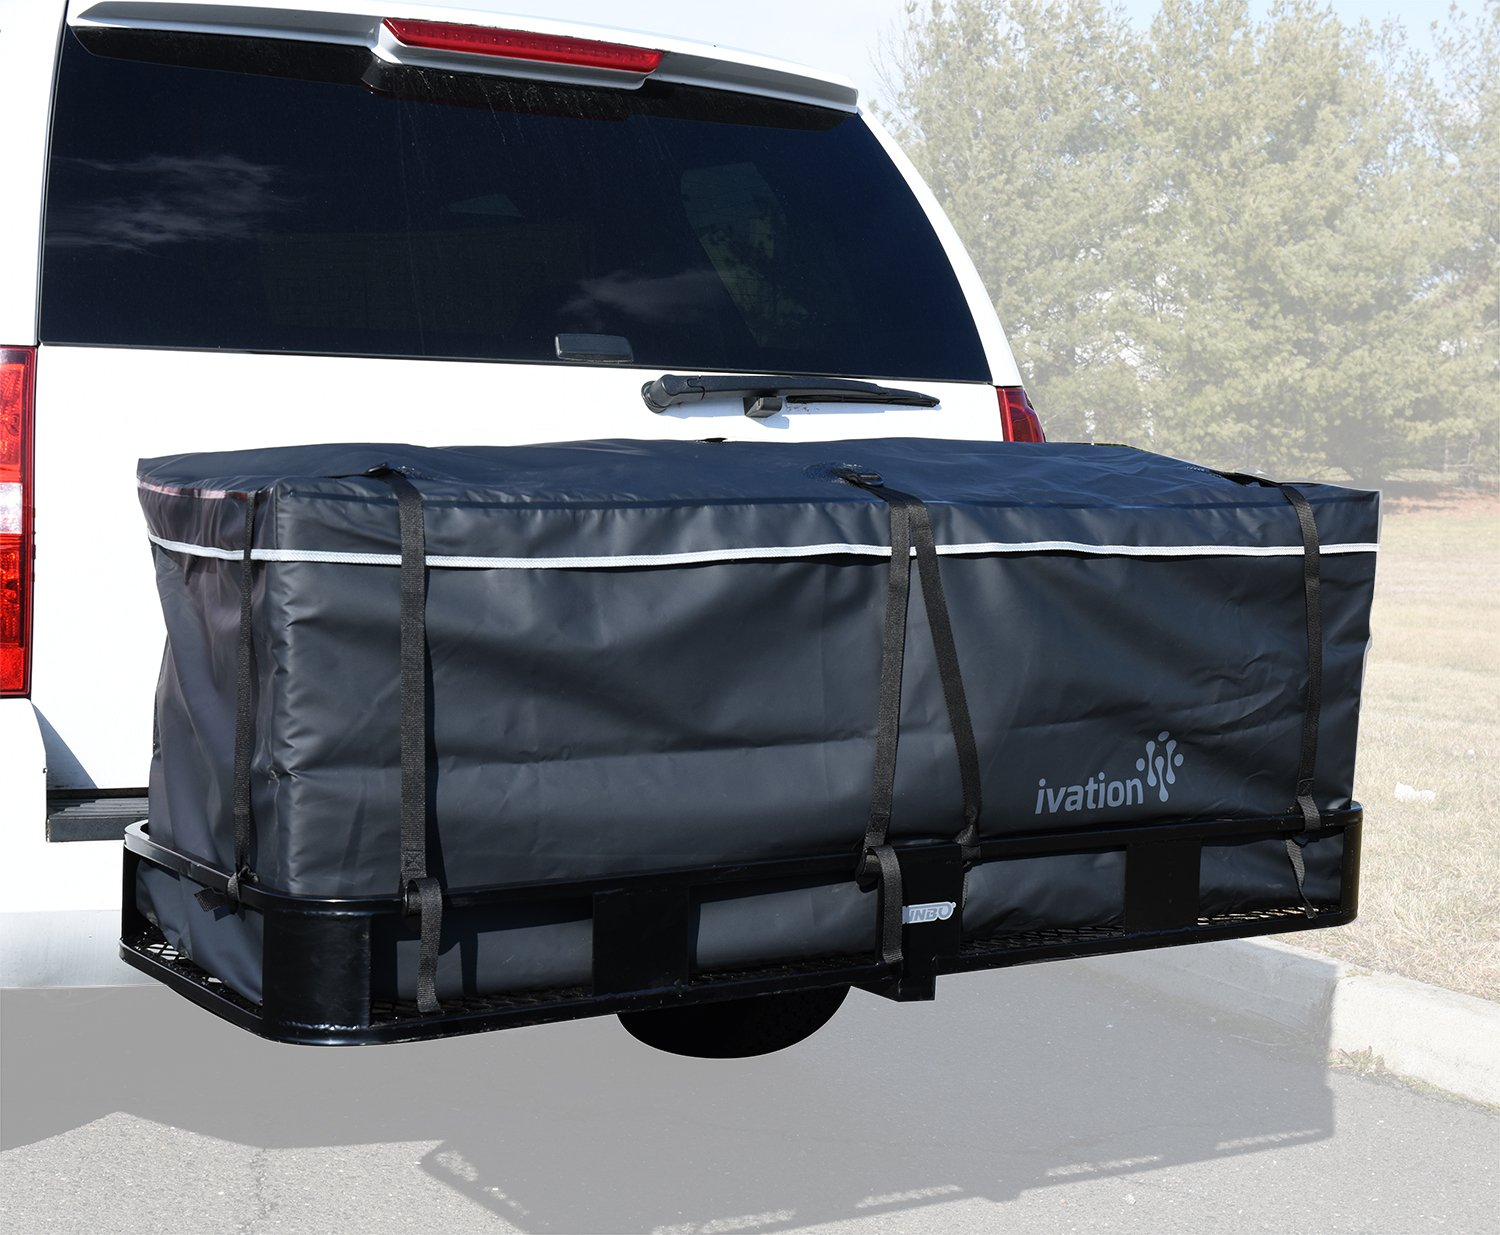 Ivation Hitch Bag - 100% Waterproof Large Hitch Tray Cargo Carrier Bag 60' x 24' x 24' (20 Cu Ft)